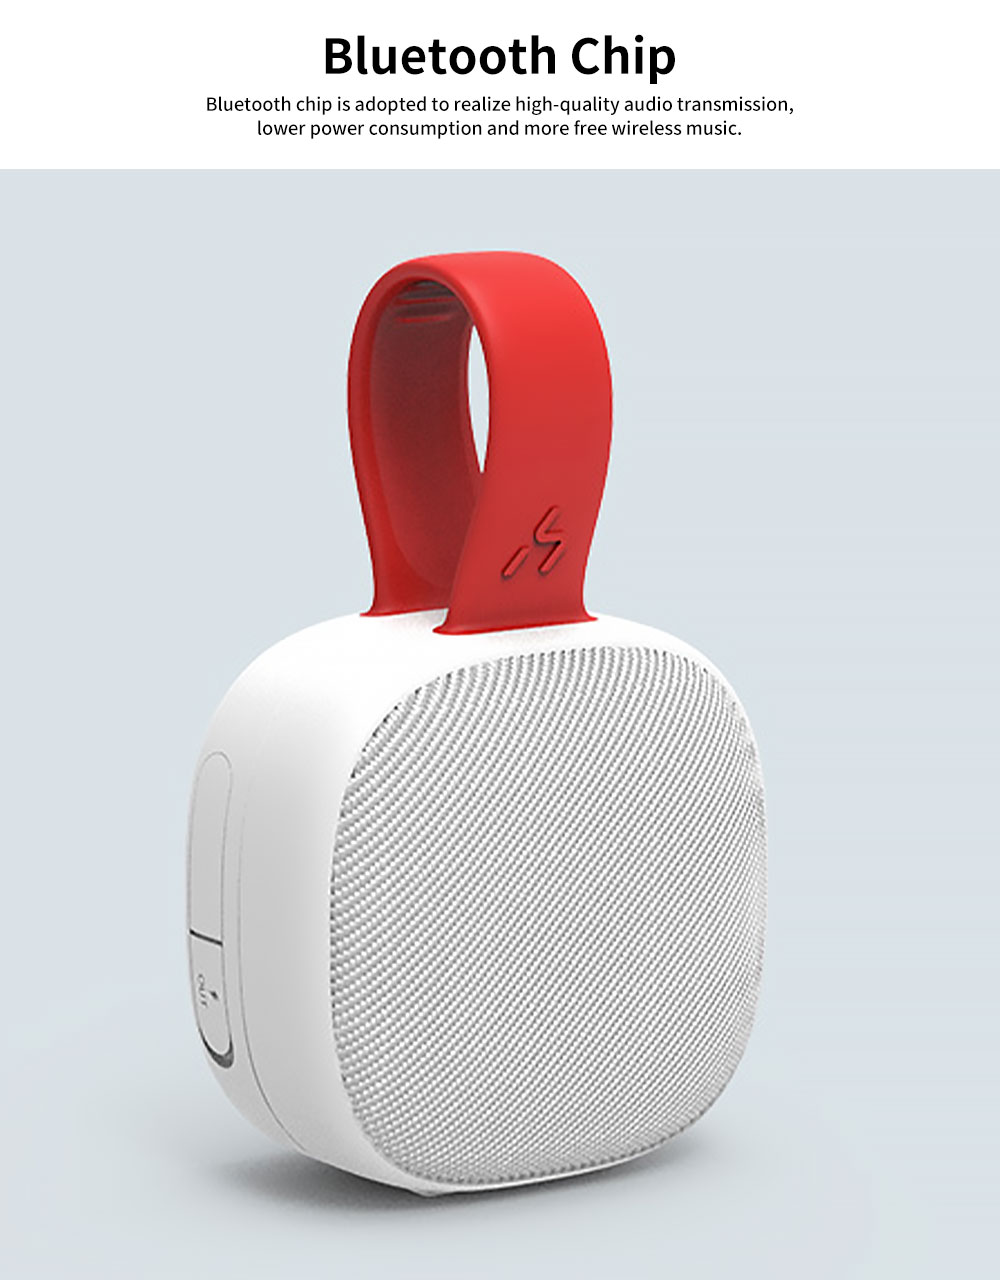 Bluetooth Speakers ABS TPU Material Shoelace Shape Acoustics Waterproof Fall-resistance Sound Rechargeable Portable Loudspeaker Box 1